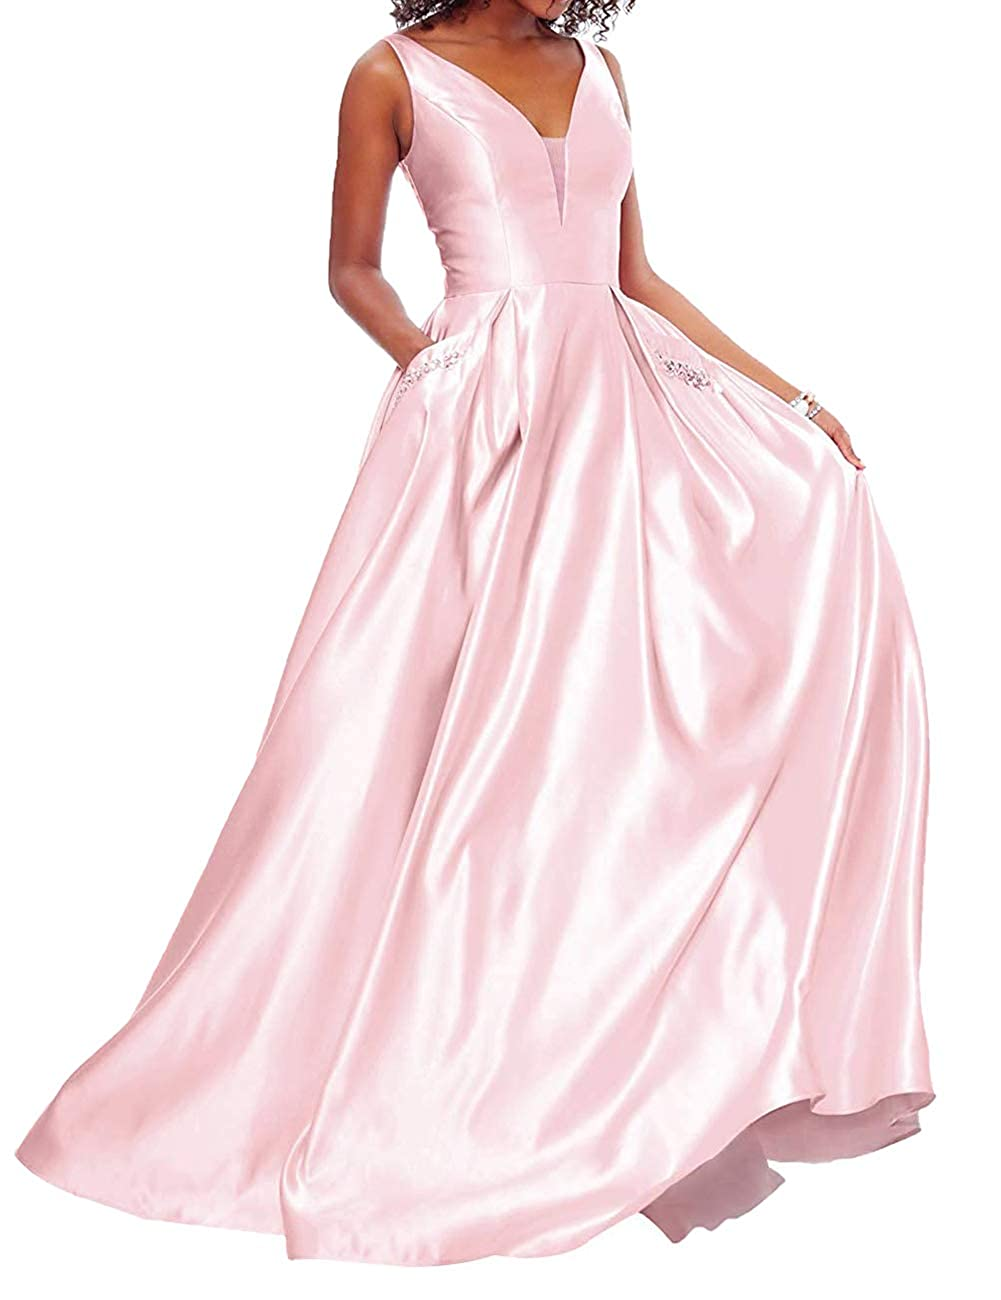 bluesh Pink JAEDEN Prom Dresses Long Evening Gowns Formal V Neck Prom Dress Sleeveless Evening Dresses Party Gown with Pocket